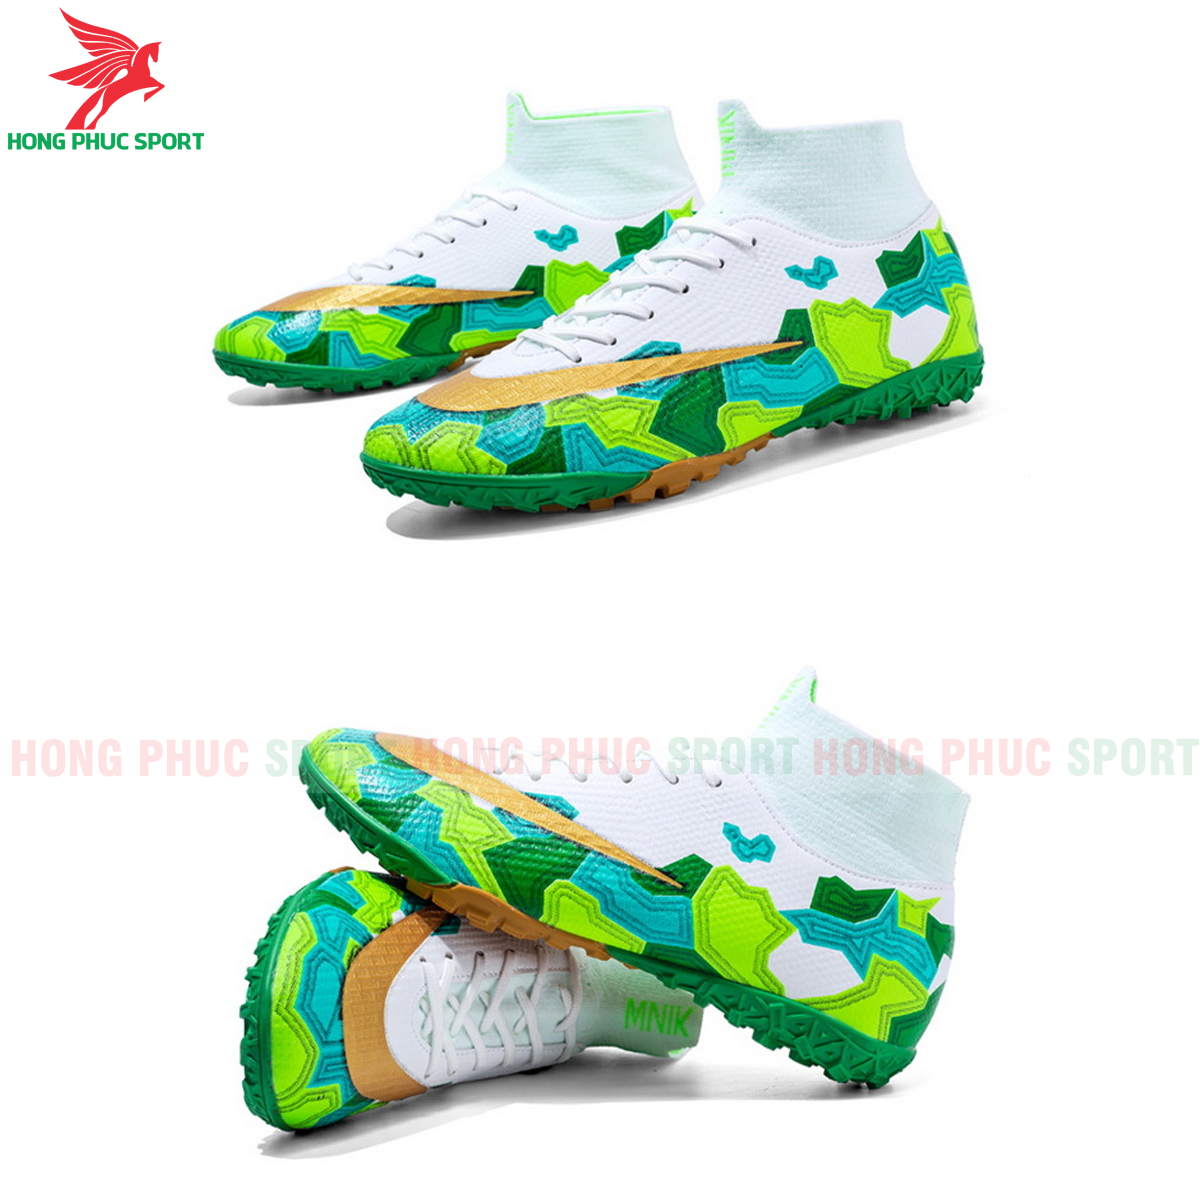 https://cdn.hongphucsport.com/unsafe/s4.shopbay.vn/files/285/giay-co-cao-superfly-7-elite-mbappe-dinh-thap-mau-xanh-la-5-5f939437747d6.png